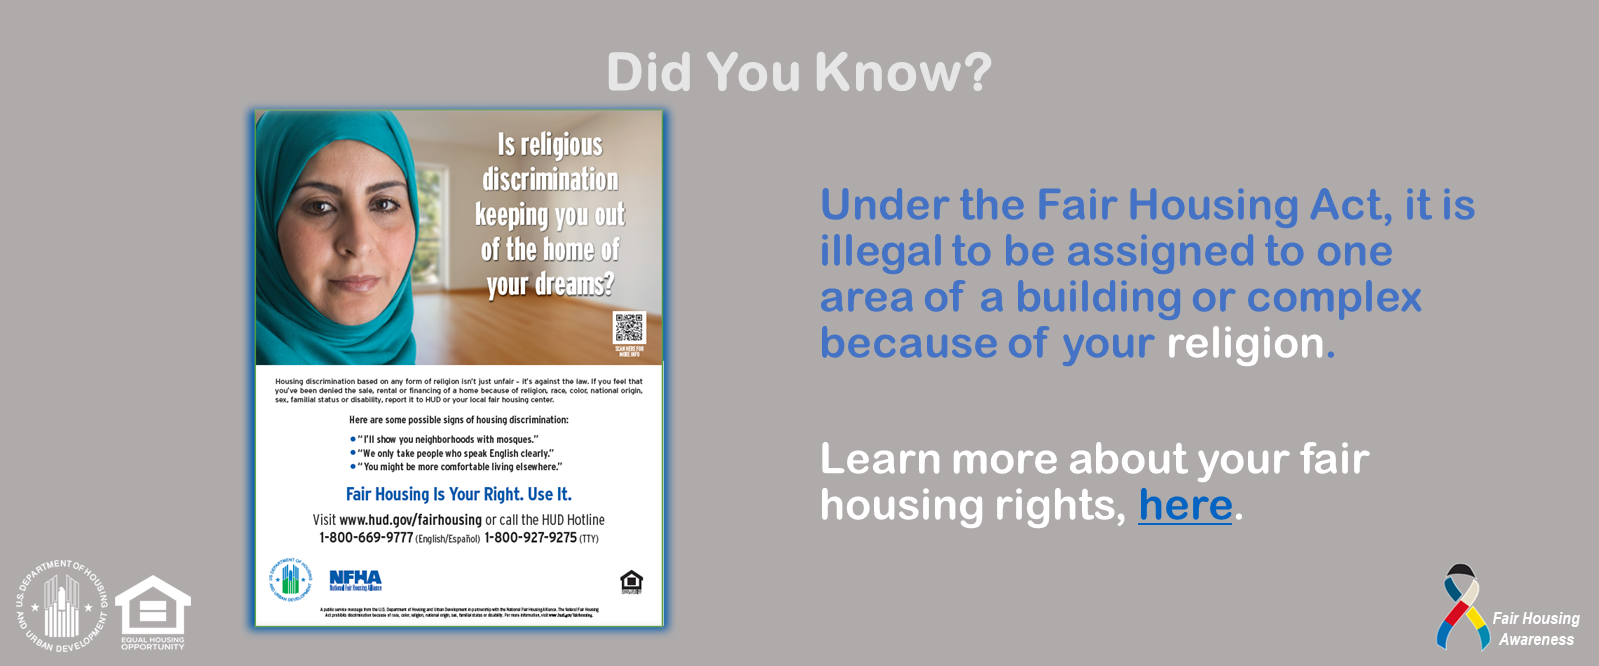 [Under the Fair Housing Act, it is illegal to be assigned to one area of a building or complex because of your religion.]. HUD photo